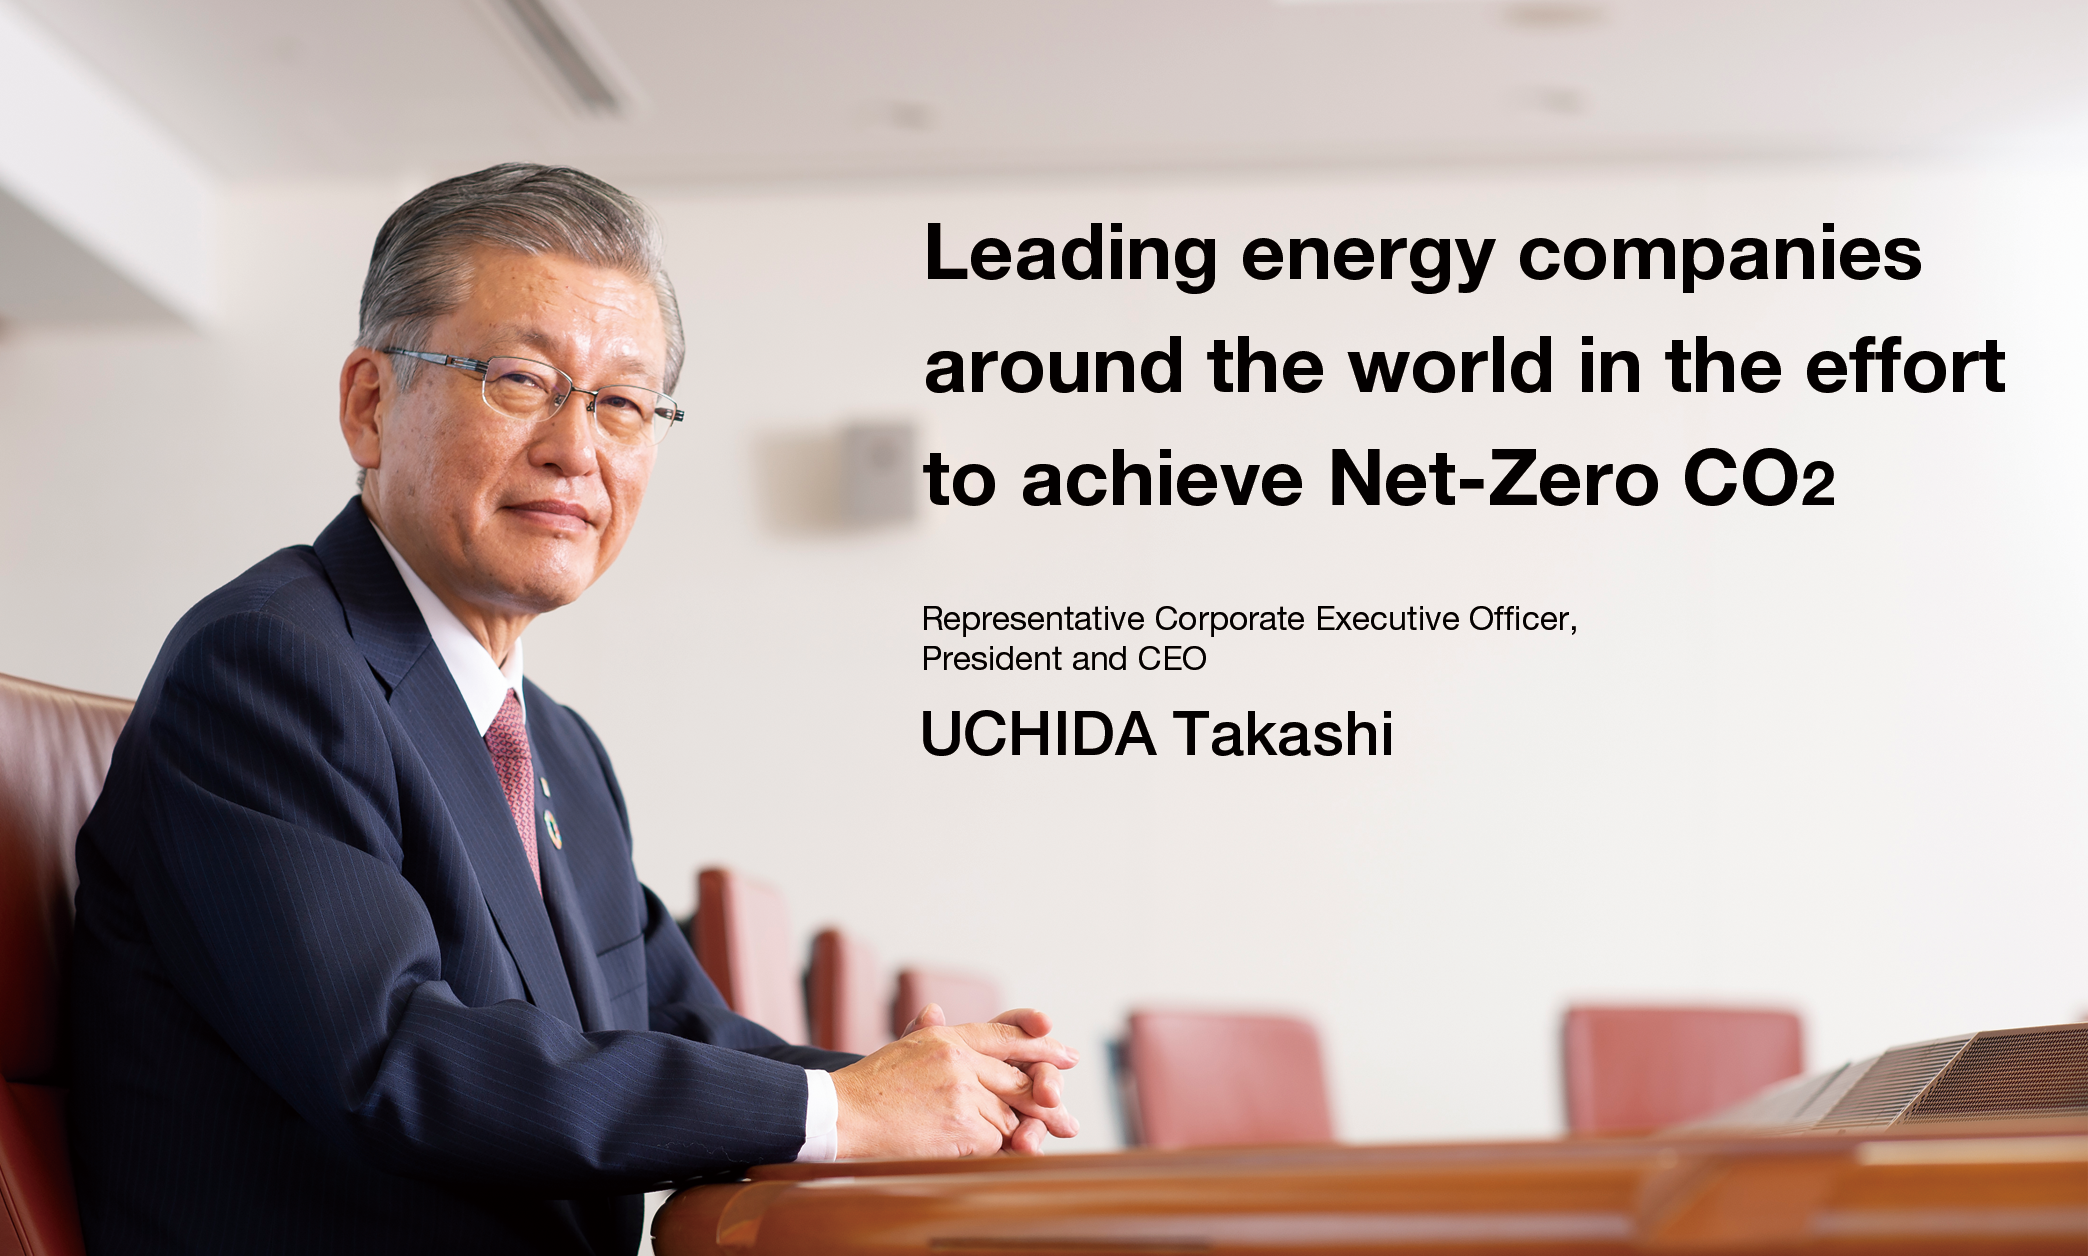 Leading energy companies around the world in the effort to achieve Net-Zero CO2 UCHIDA Takashi Representative Director, President and CEO